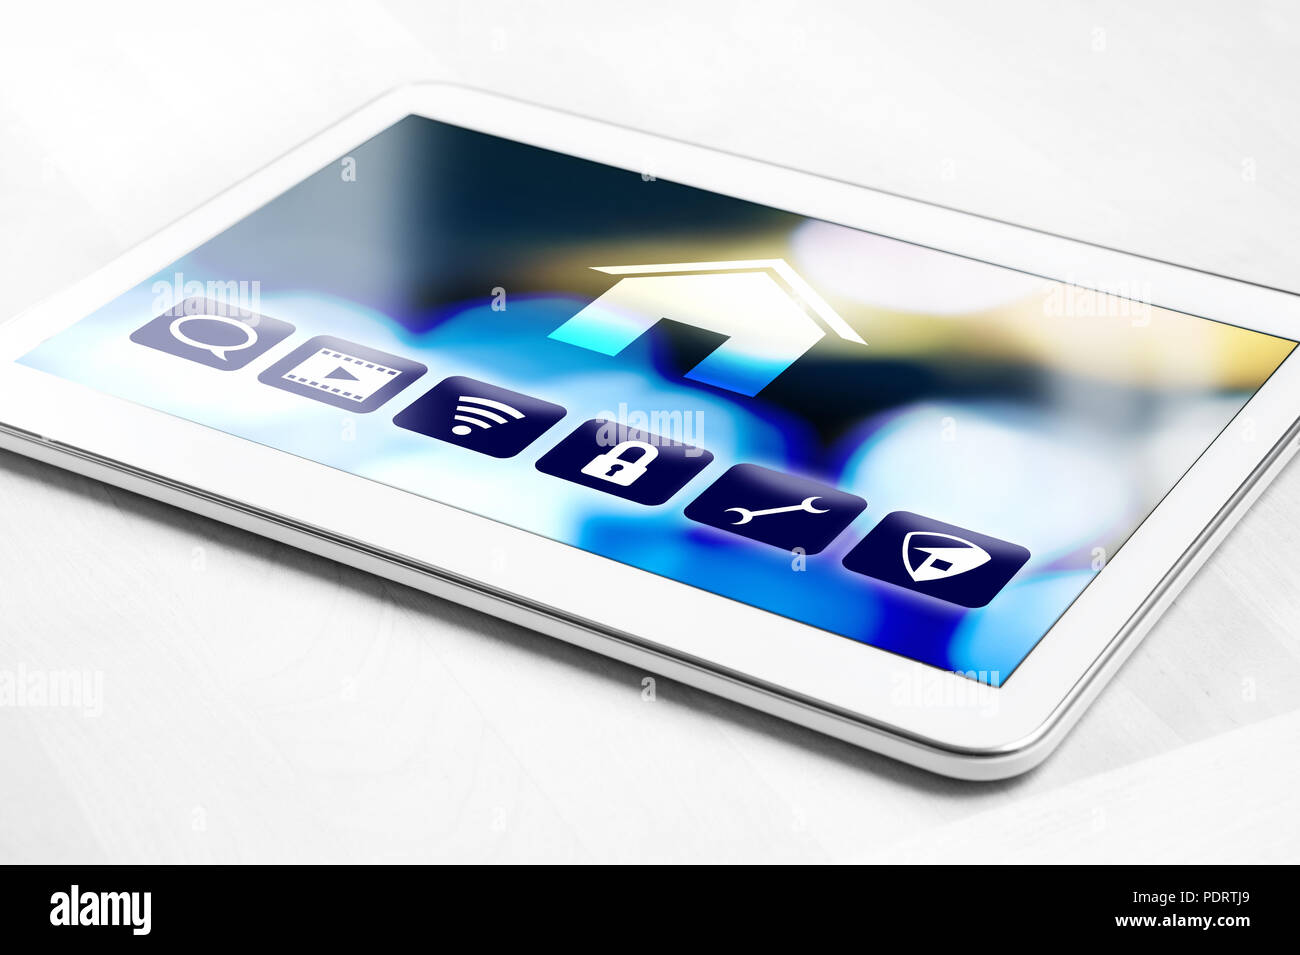 Tablet With Smart Home Control System For House Appliances Remote Controller App On Smart Device Modern Futuristic Internet Of Things Iot Stock Photo Alamy